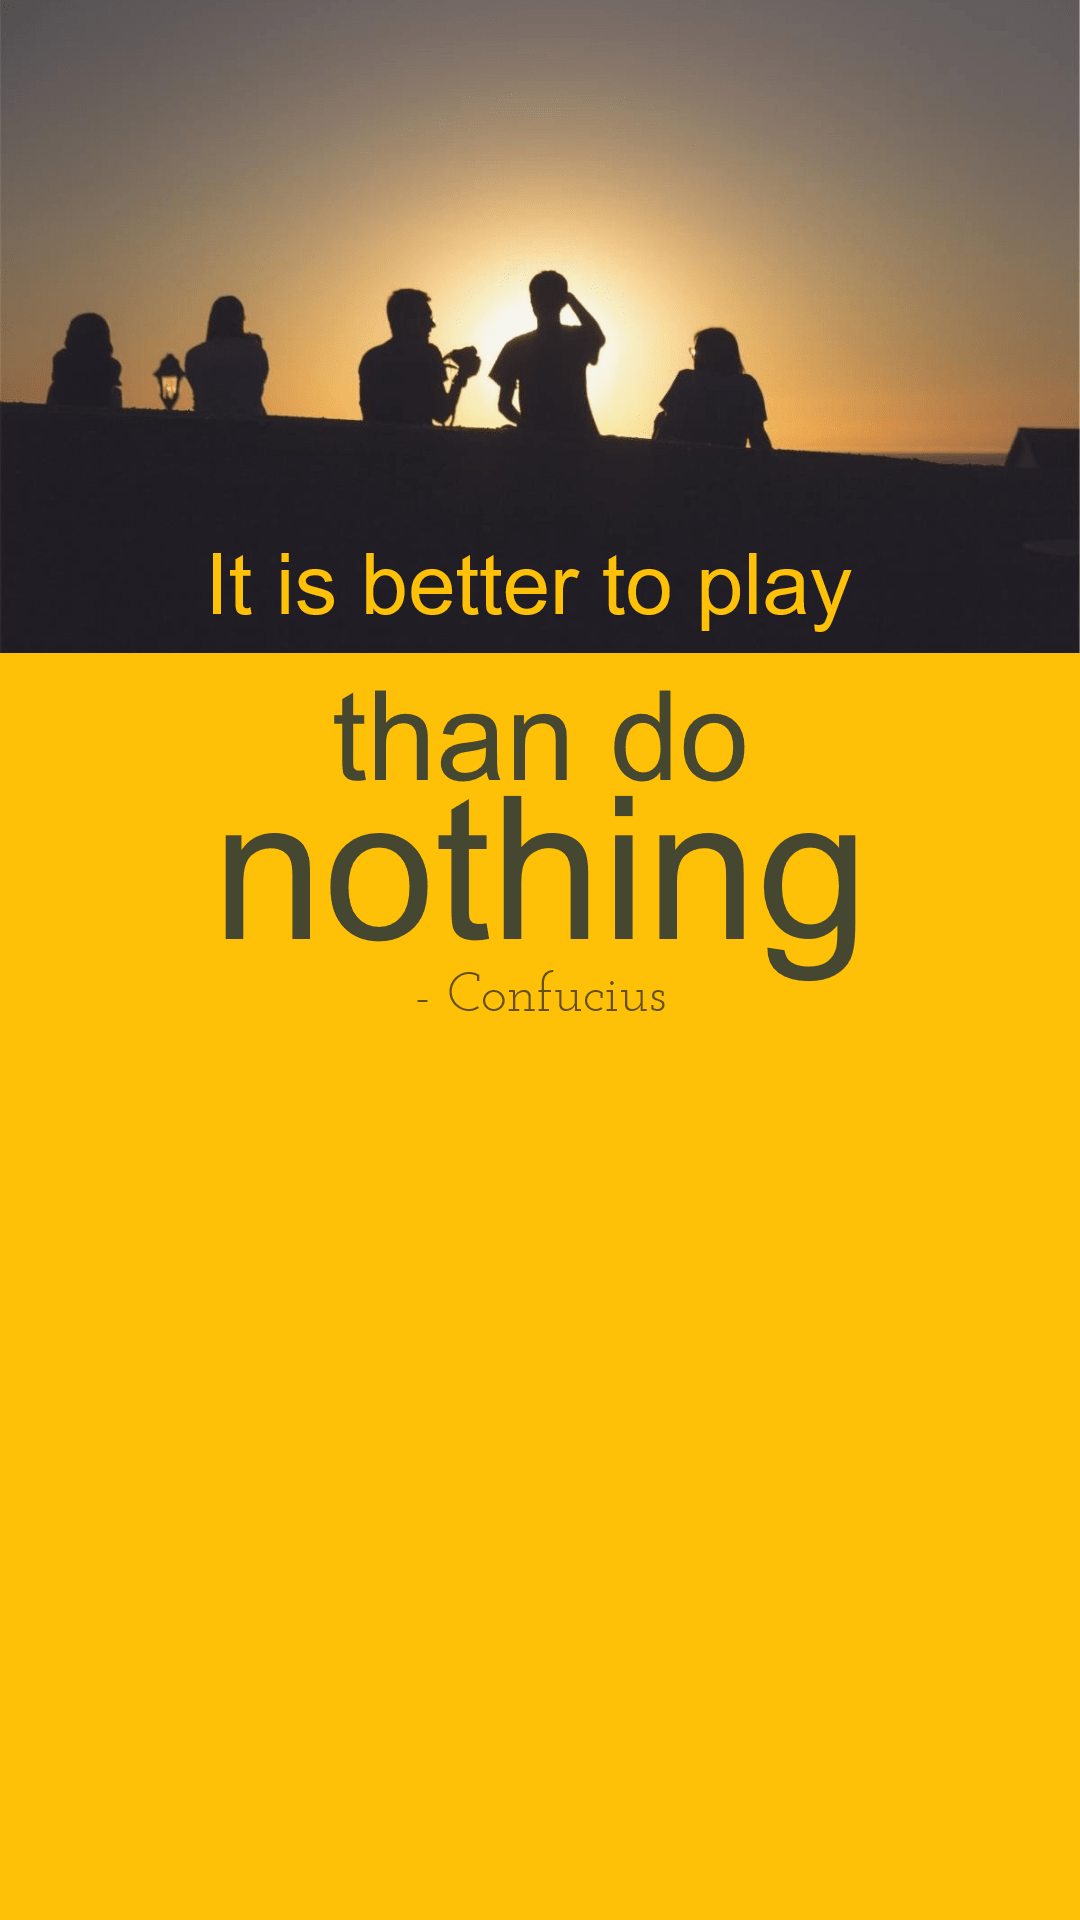 Yellow,                Text,                Font,                Sky,                Brand,                Silhouette,                Landscape,                Poster,                Quote,                Simple,                Black,                 Free Image